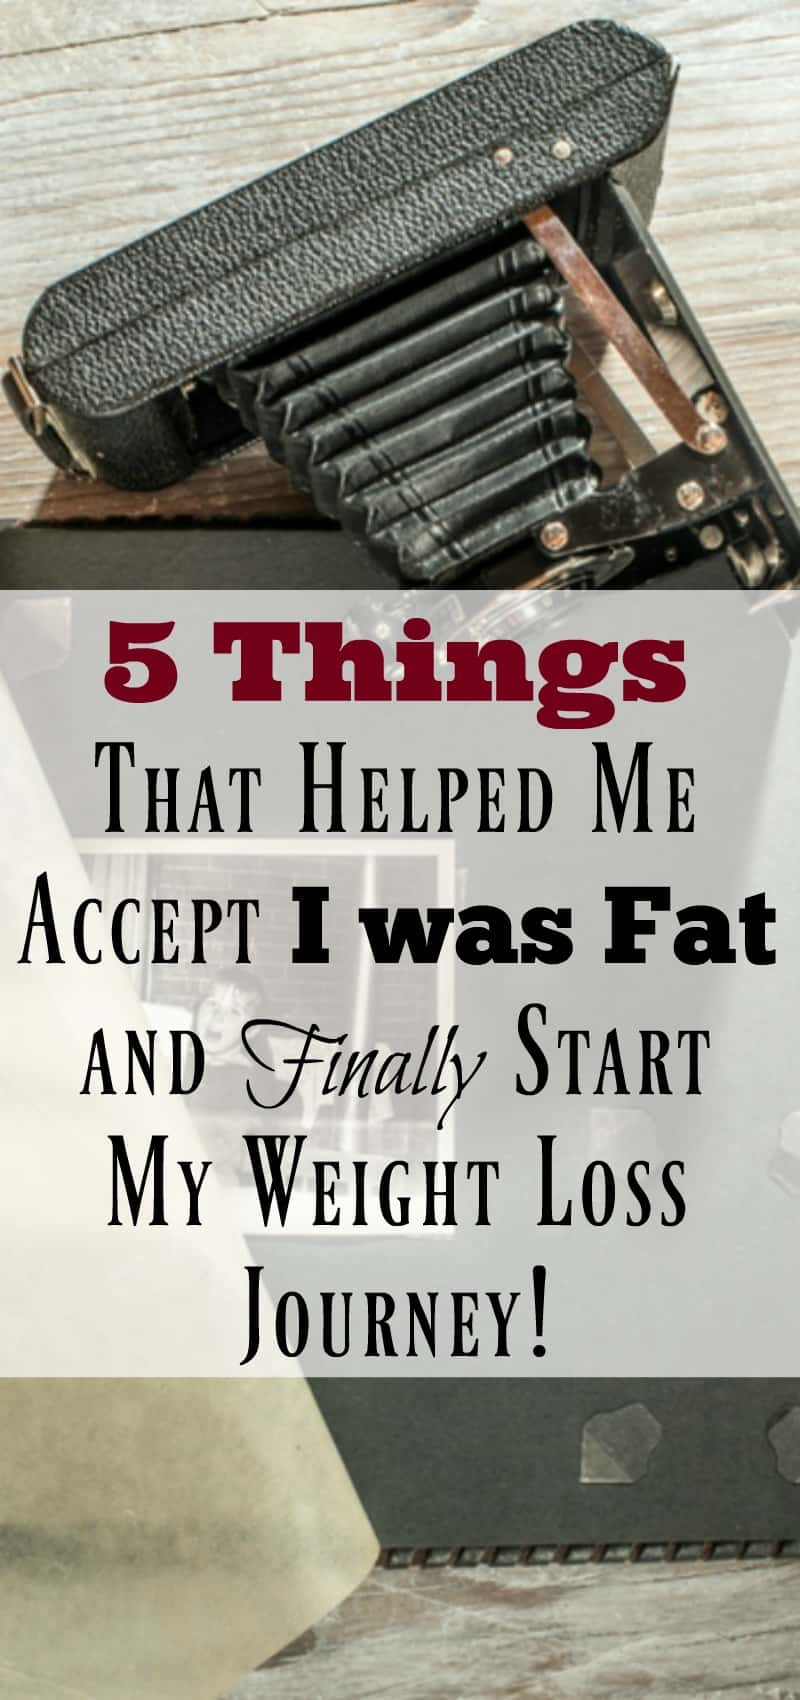 5 Things That Helped Me Accept I was Fat and Finally Start My Weight Loss Journey